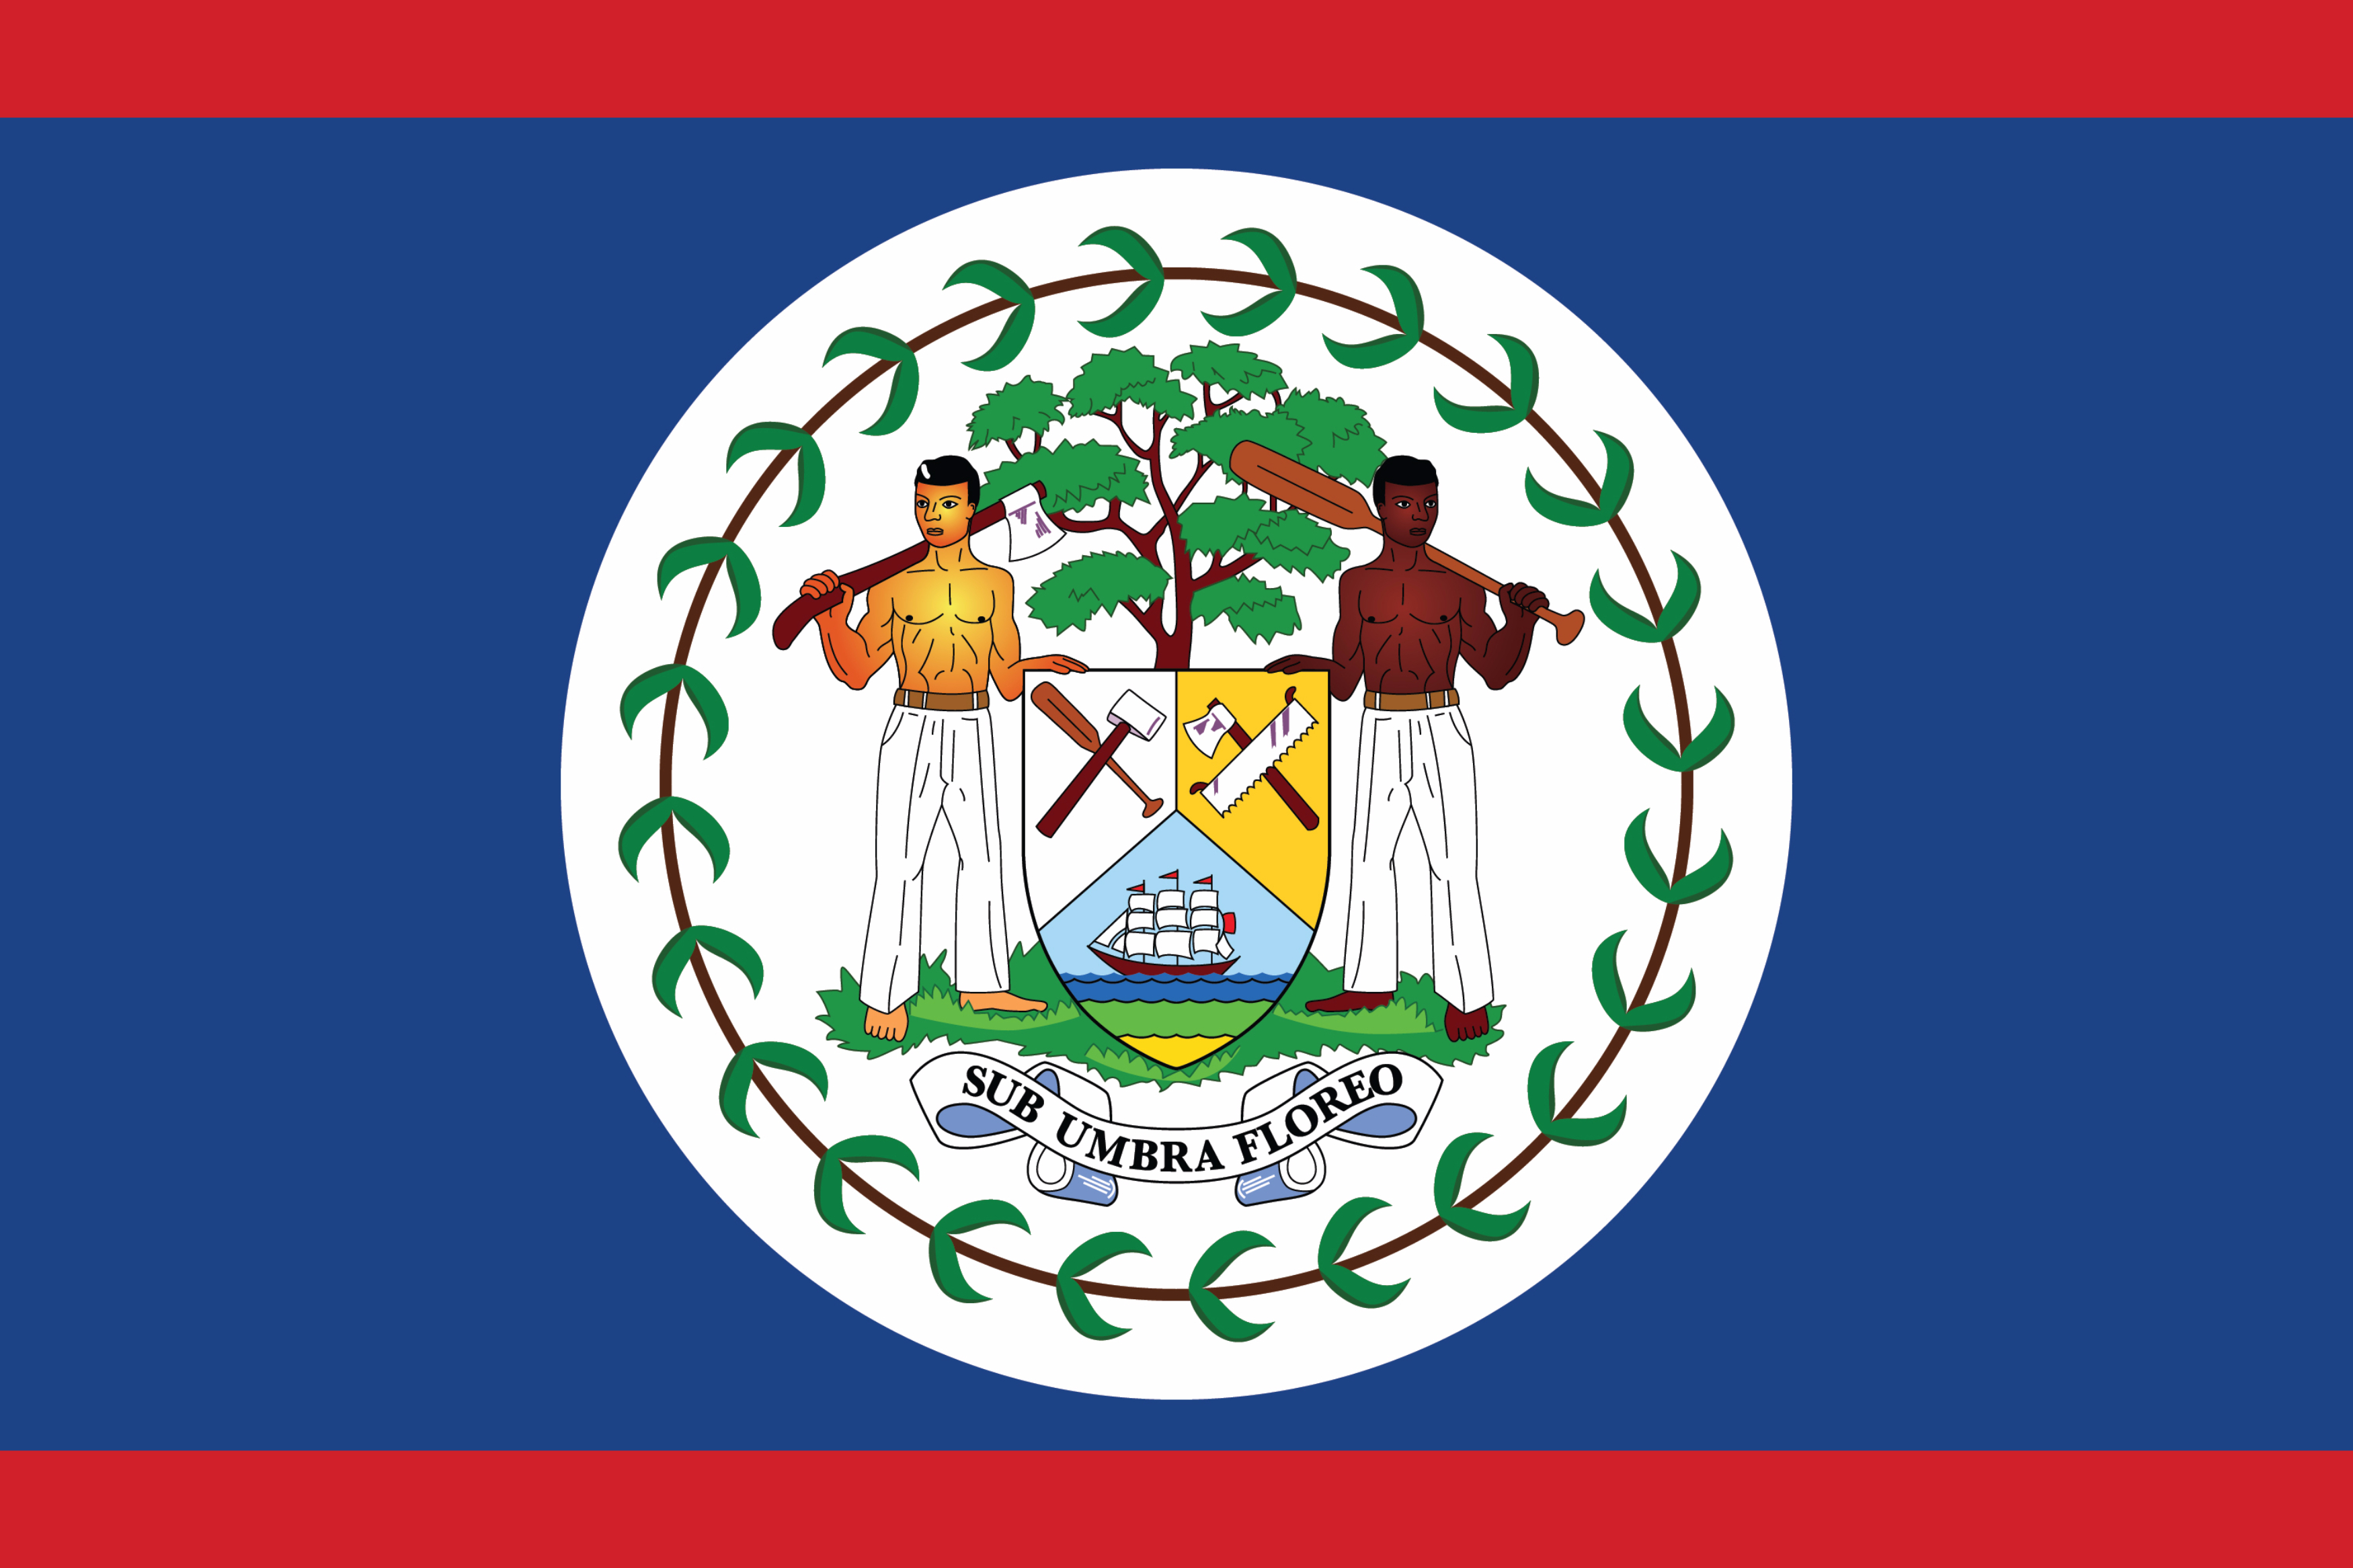 The National flag of Belize features a royal blue field with two narrow red stripes along the top and bottom edges, with the coat of arms on a central disc on the blue field;